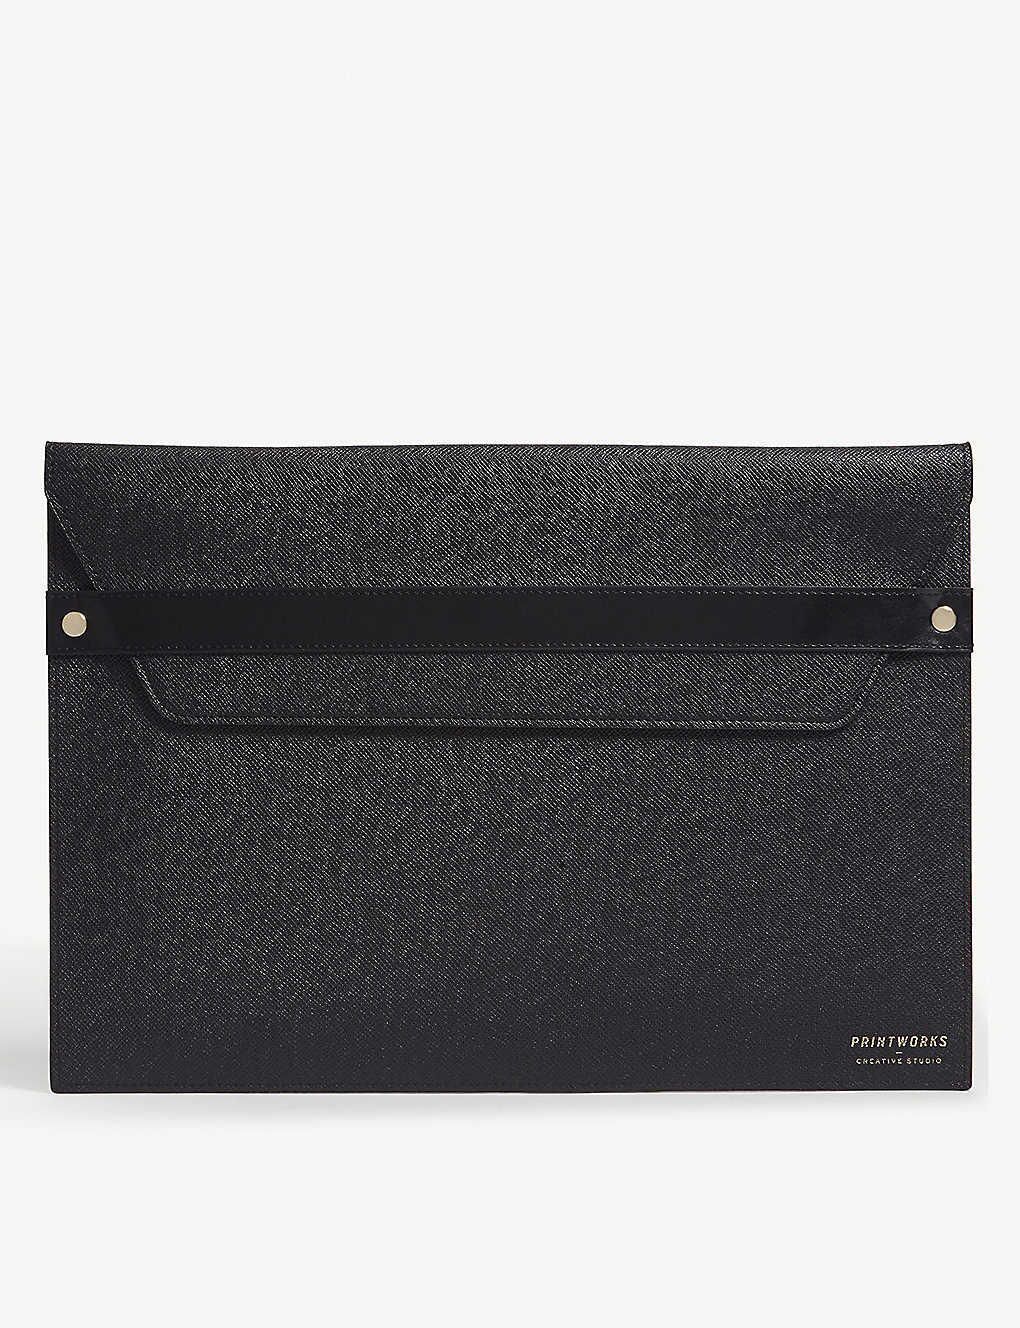 "PRINT WORKS: Textured faux leather 13"" laptop case"